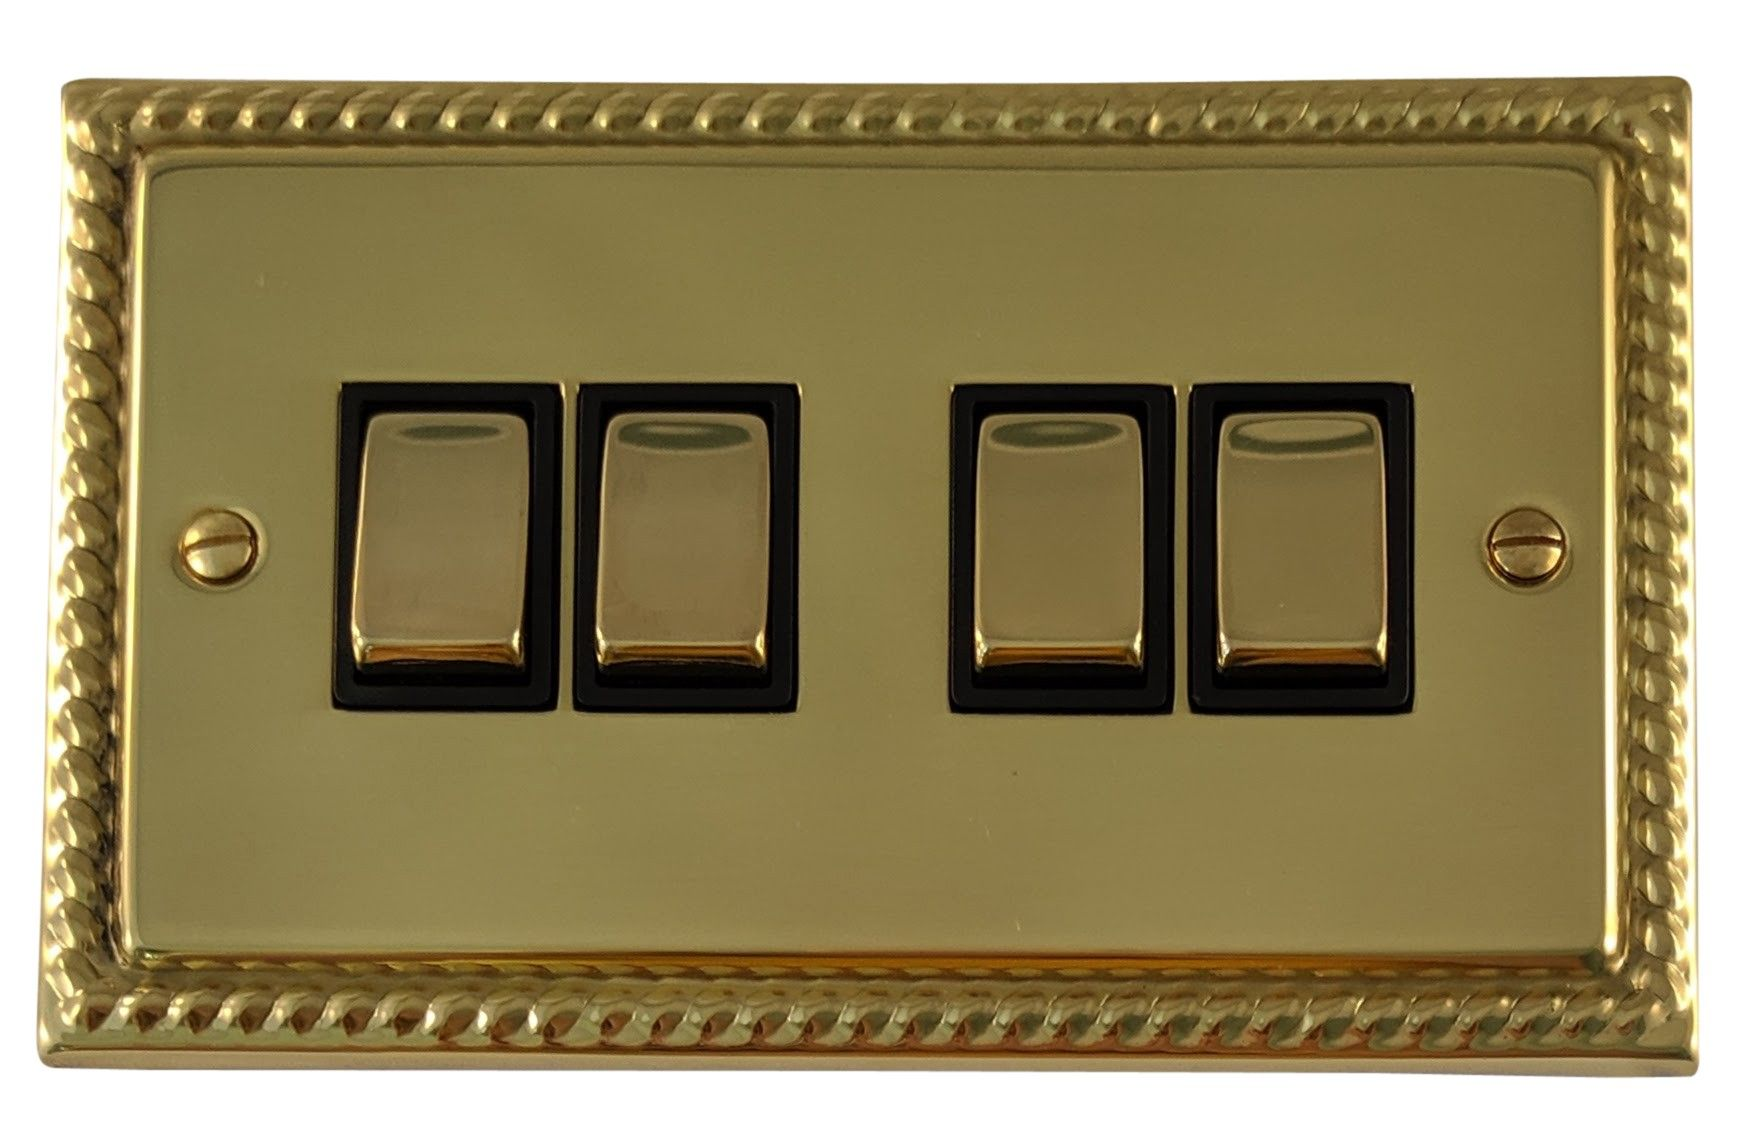 G&H MB304 Monarch Roped Polished Brass 4 Gang 1 or 2 Way Rocker Light Switch